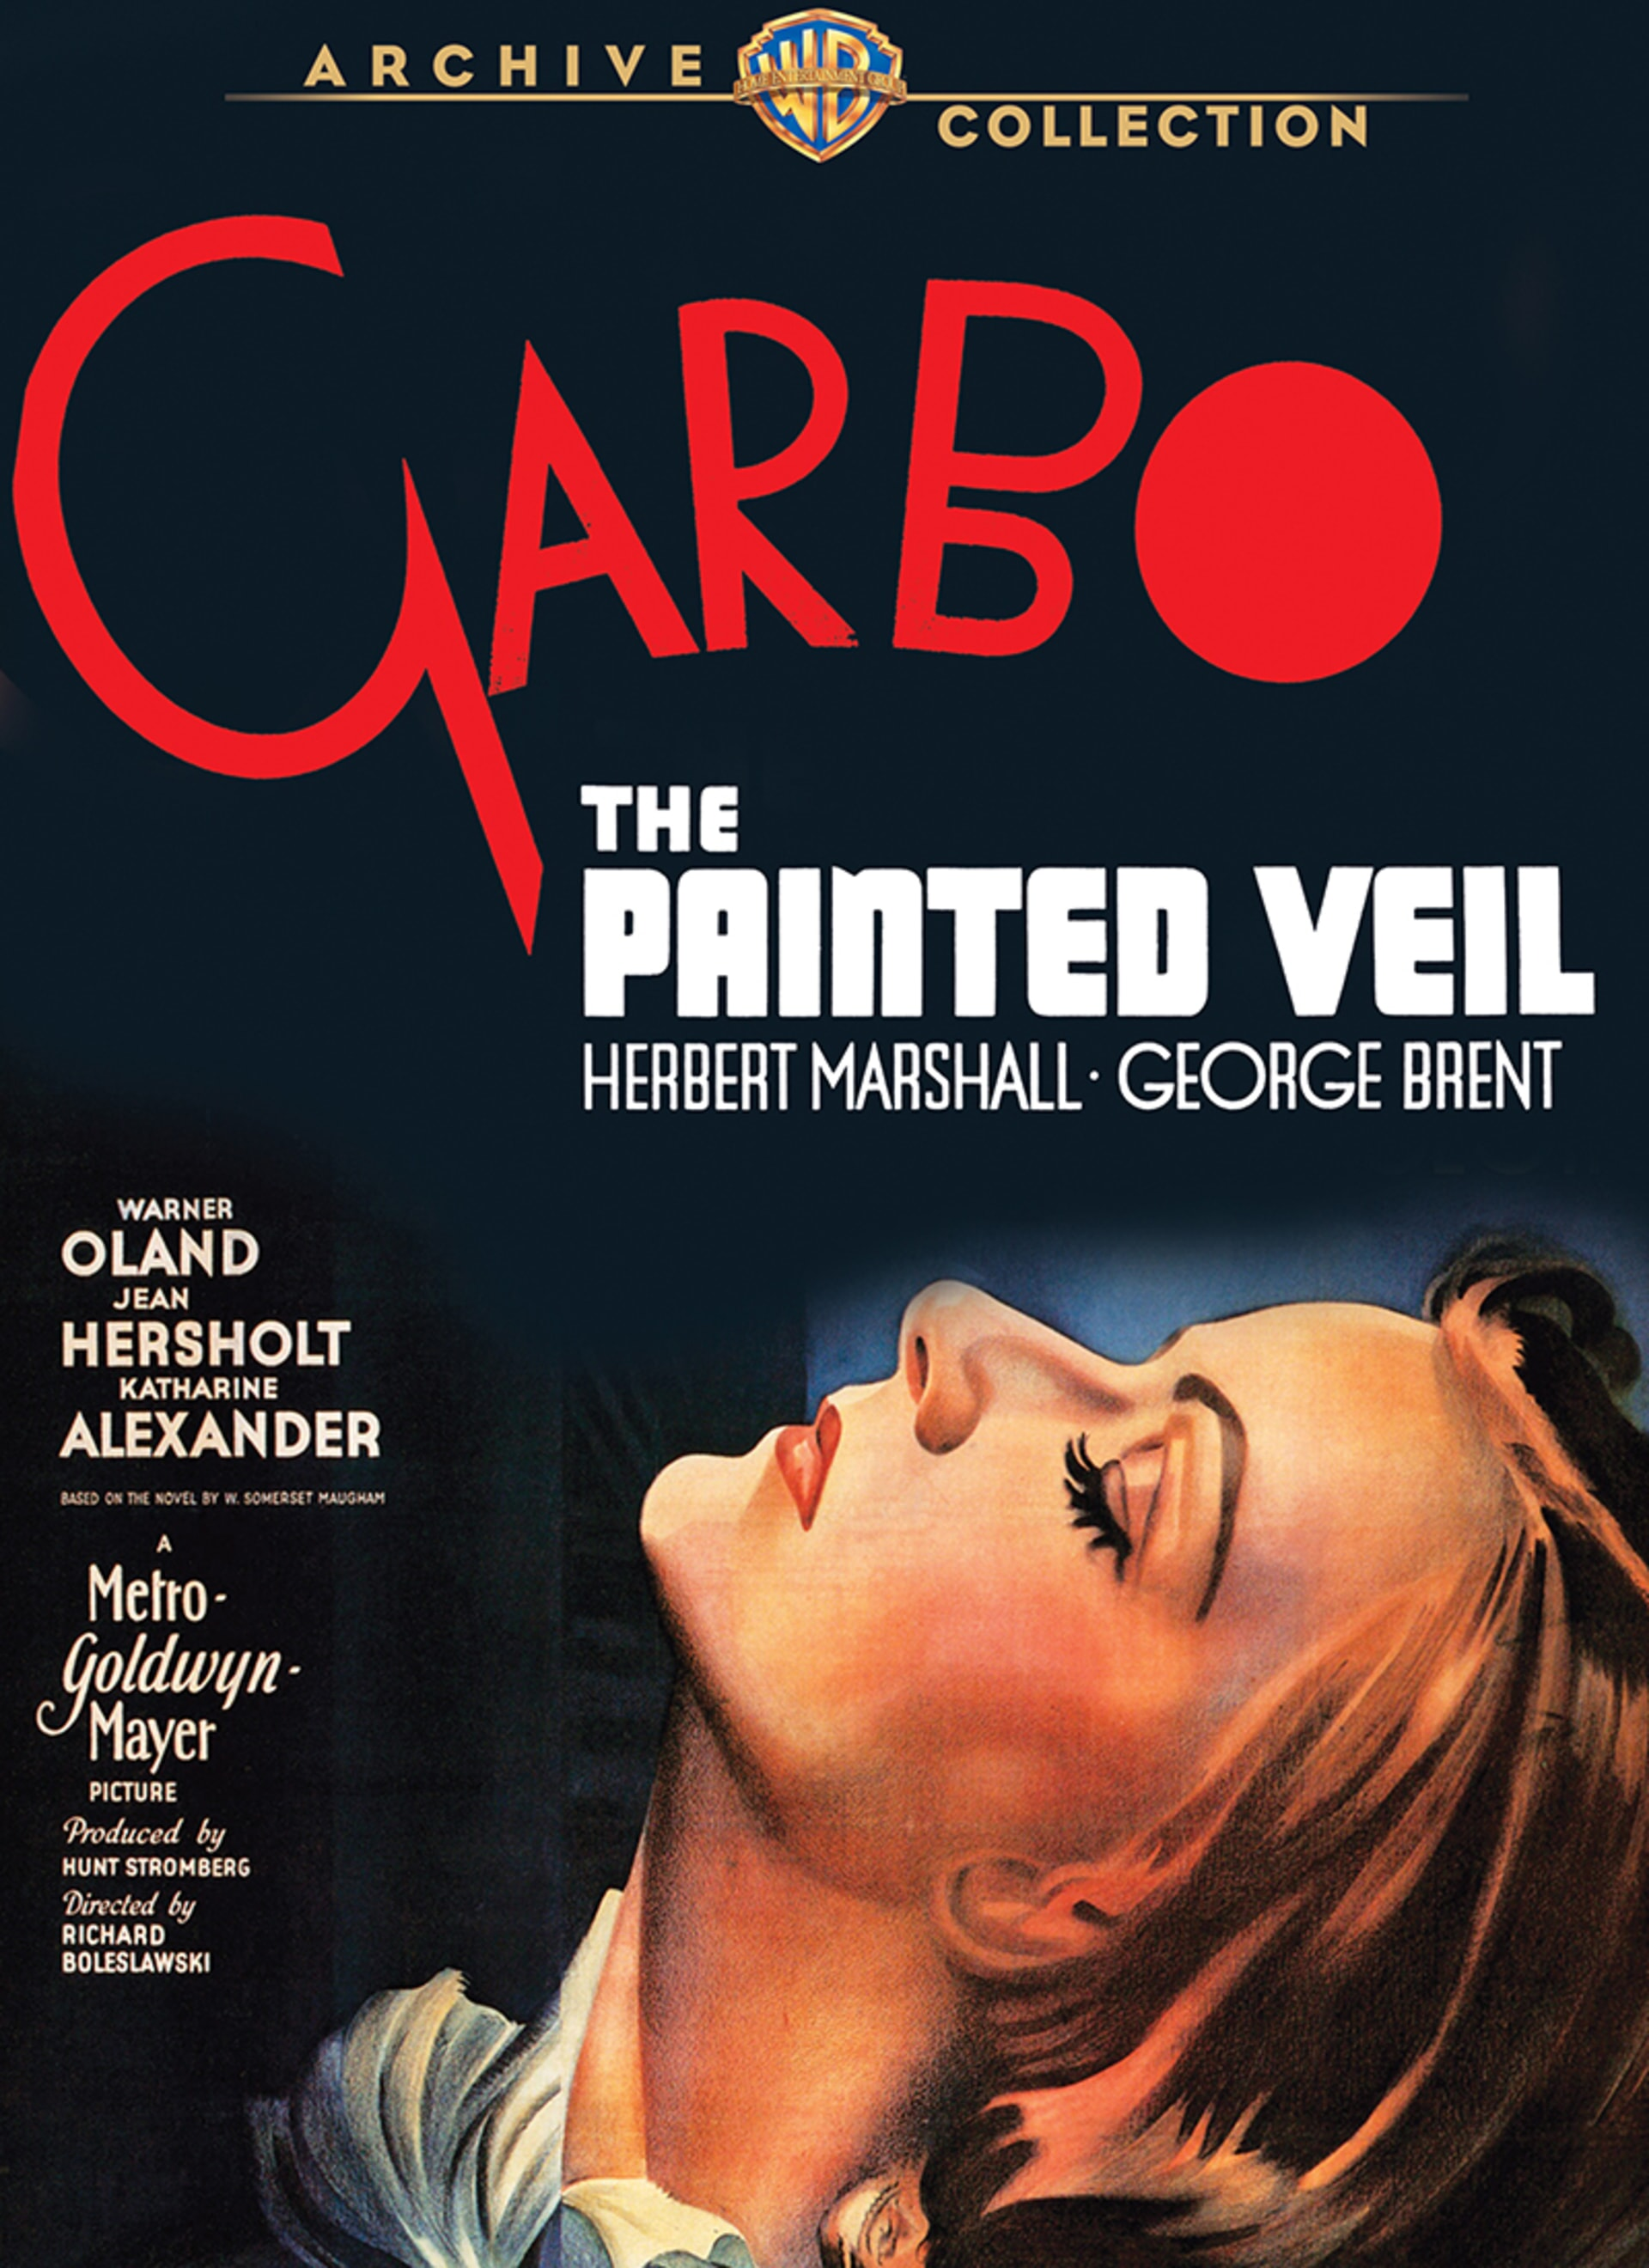 The Painted Veil (1934) - Poster 1